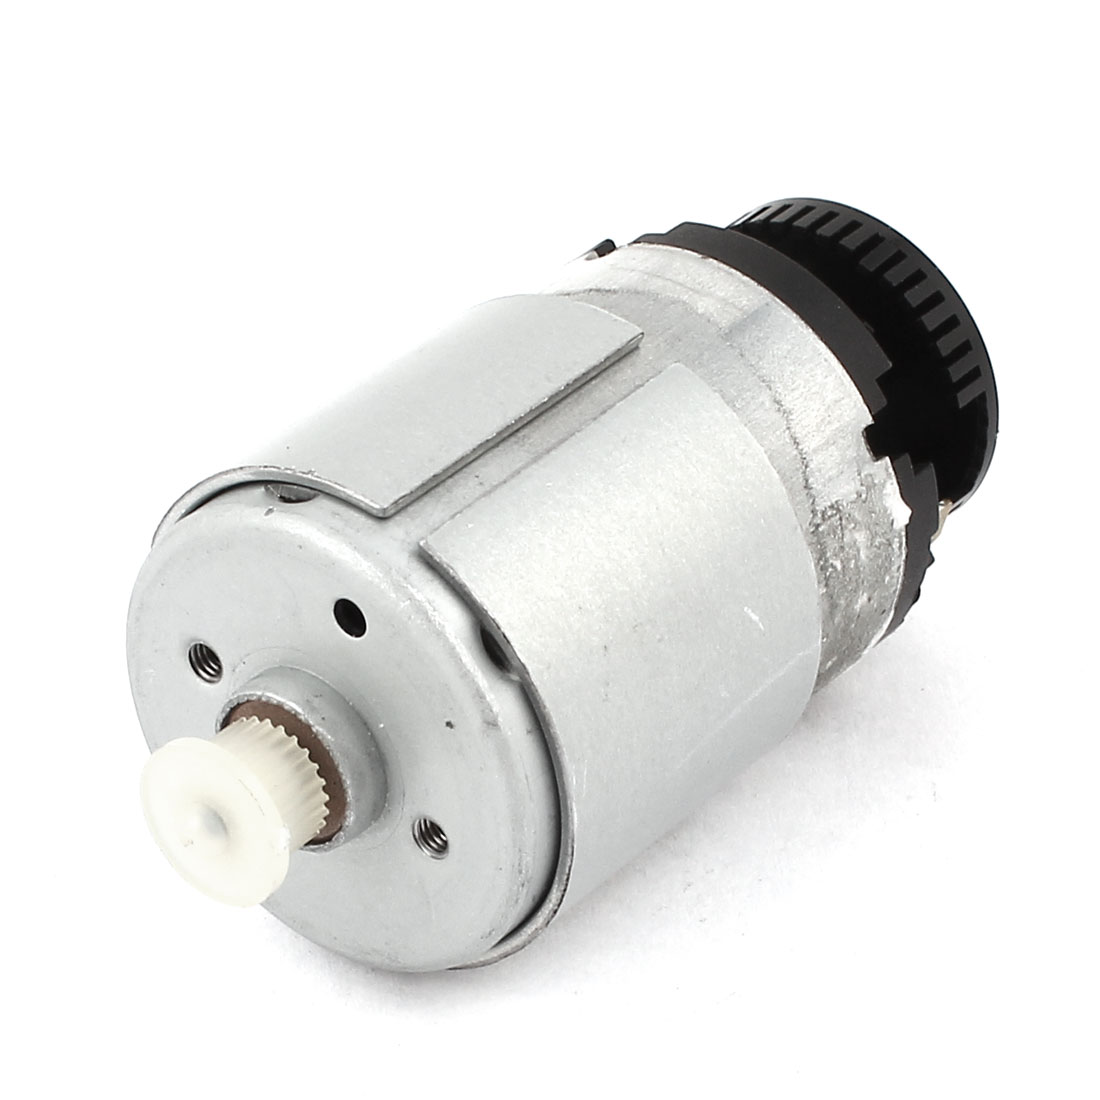 Spare Parts DC 2-5V Voltage 3500RPM High Torque Speed Reducer Reduction Motor